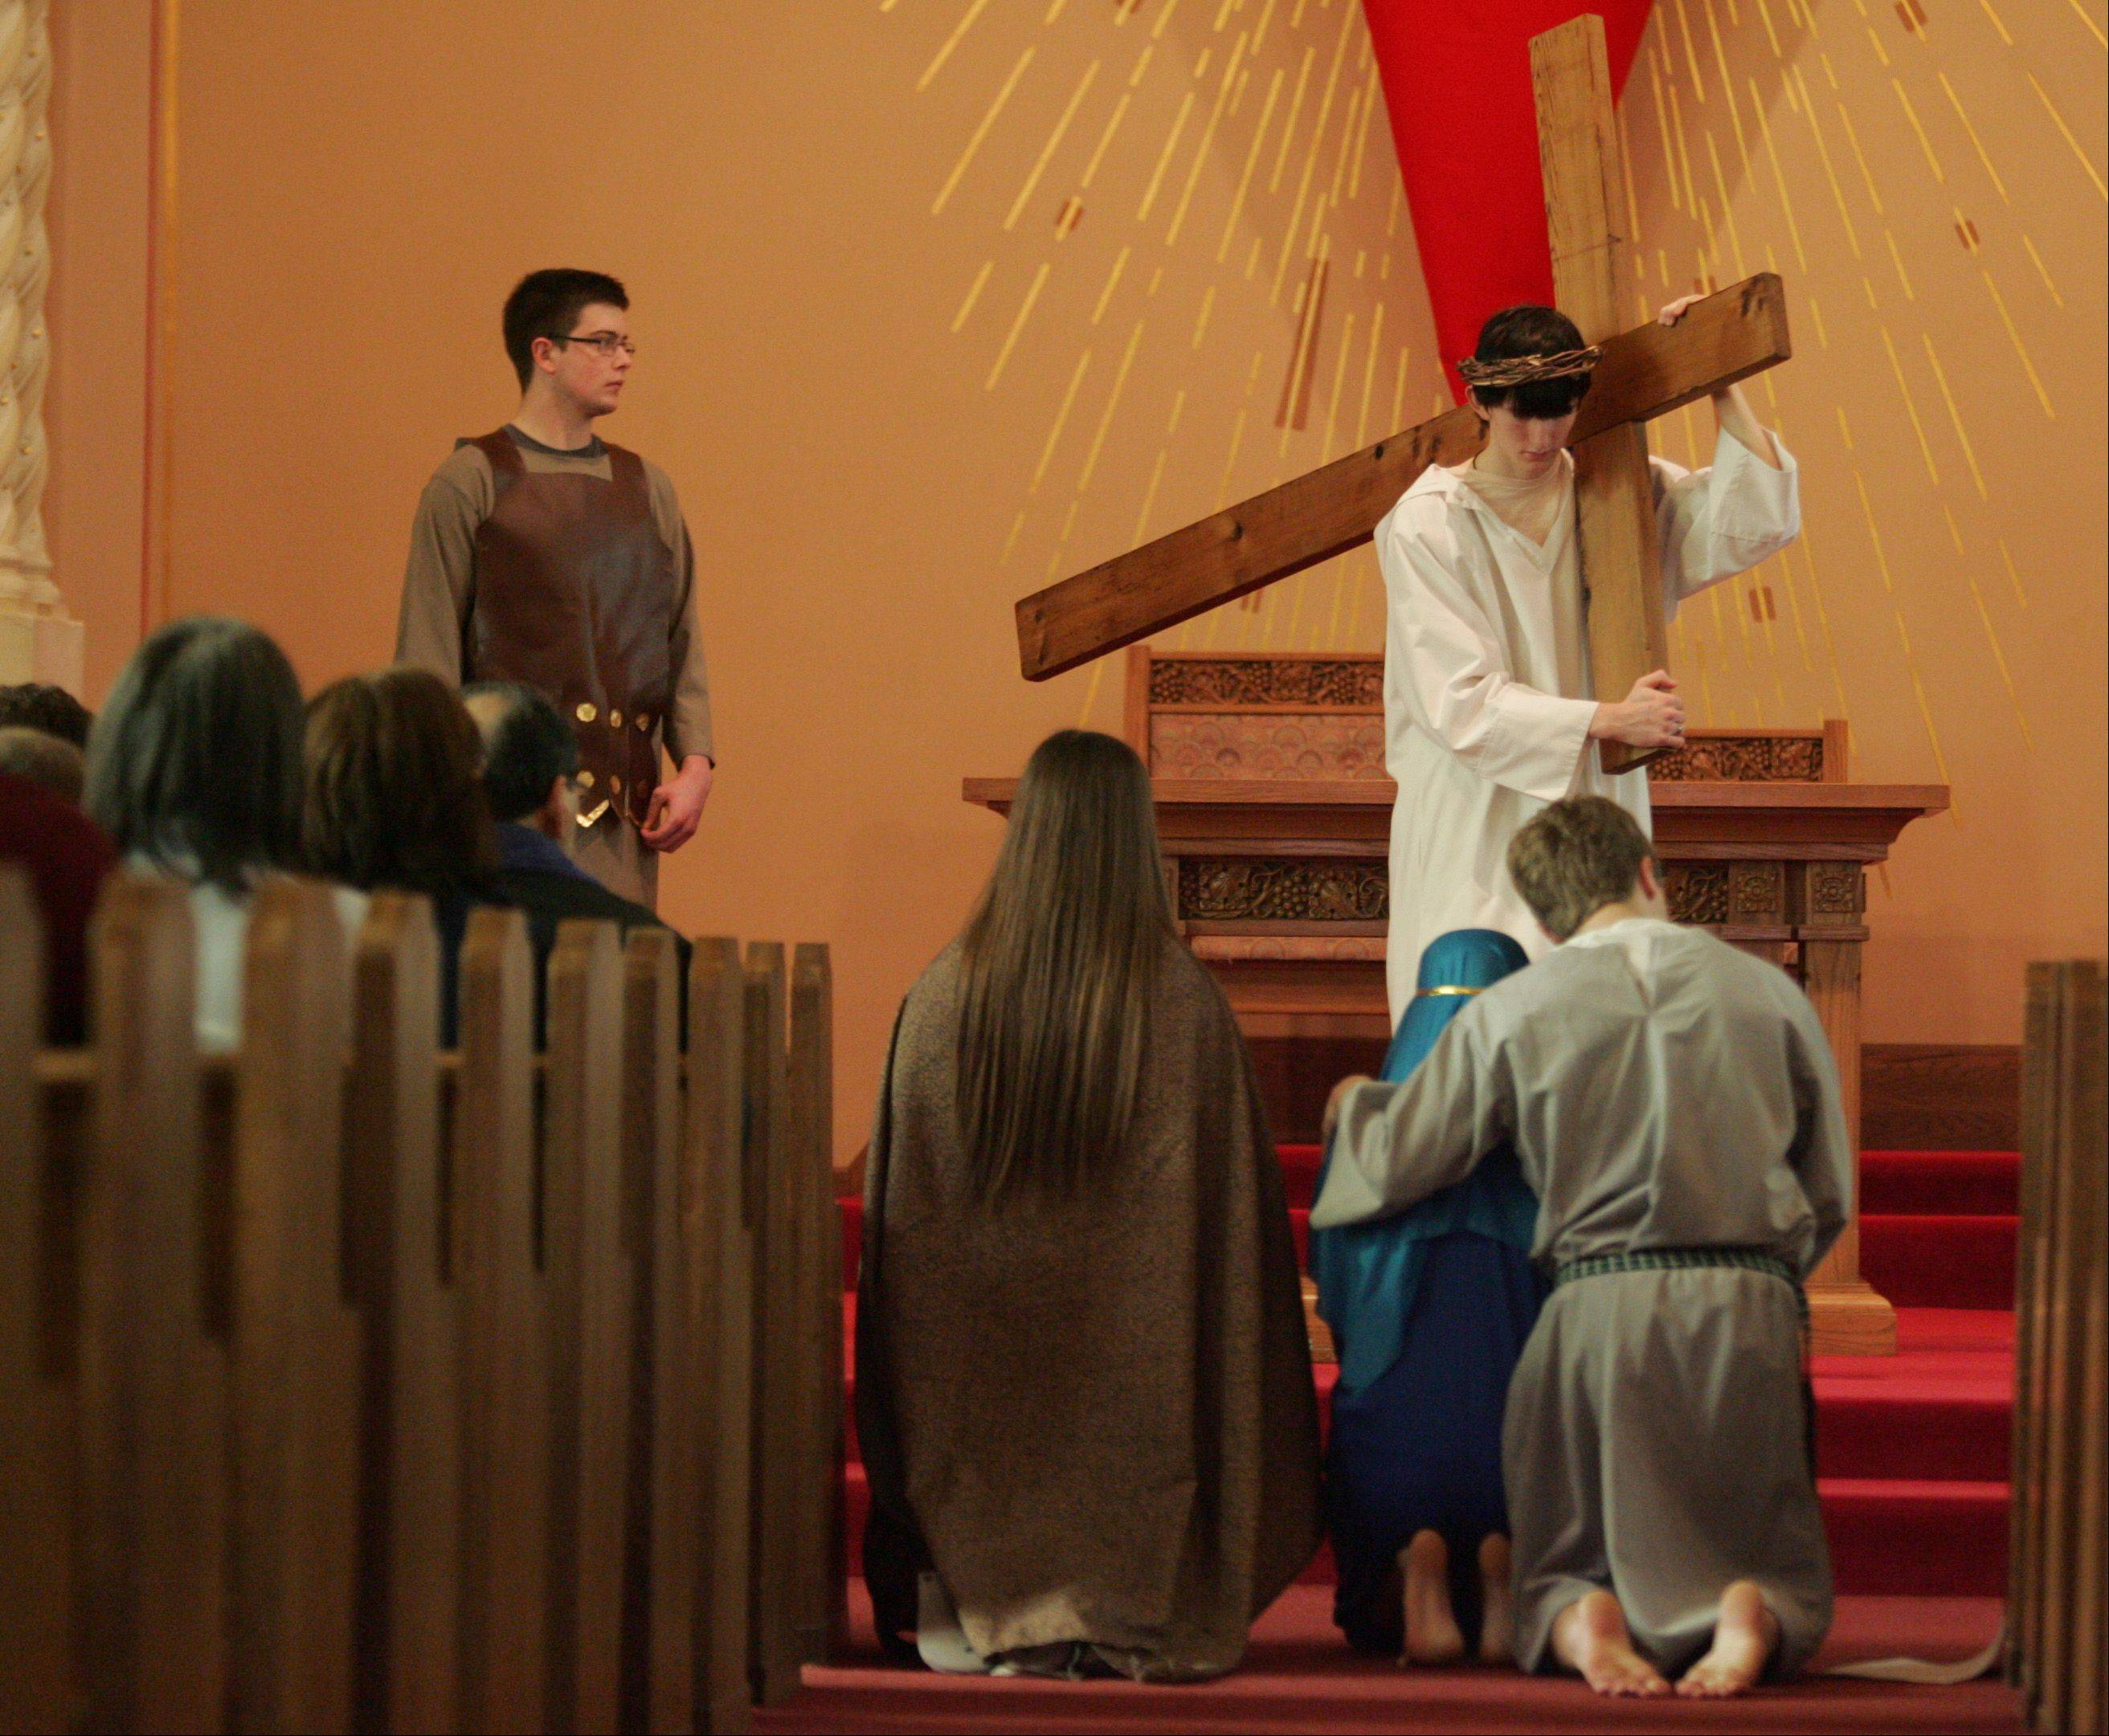 T.J. Foley, 18, portrays Jesus as Nick Wielgos, 19, looks on as a Roman soldier during a living stations of the cross Friday afternoon at St. Gall Catholic Church in Elburn. Both are from Elburn. The youth group at the church put the program together.